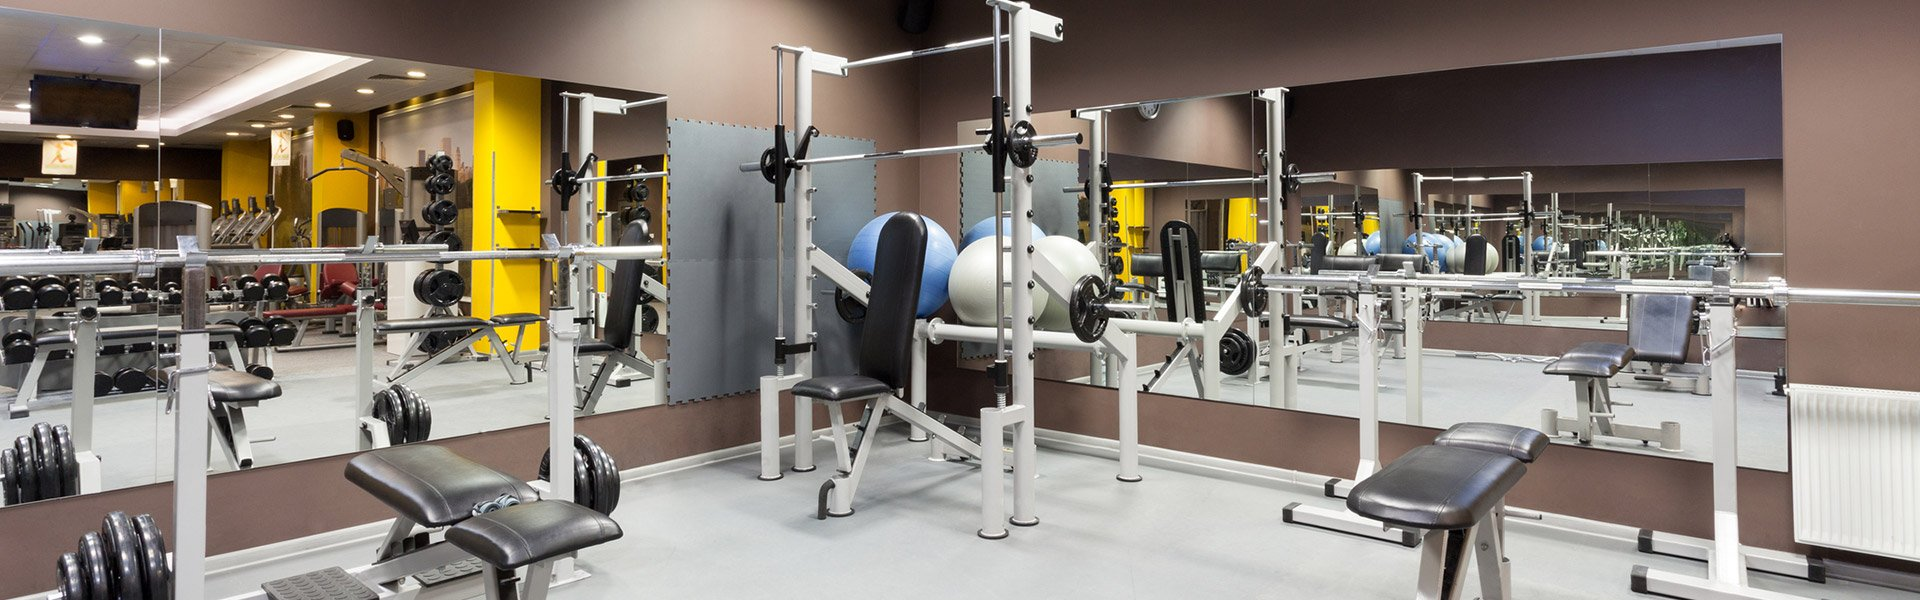 Best-gym-cleaning-Chicago